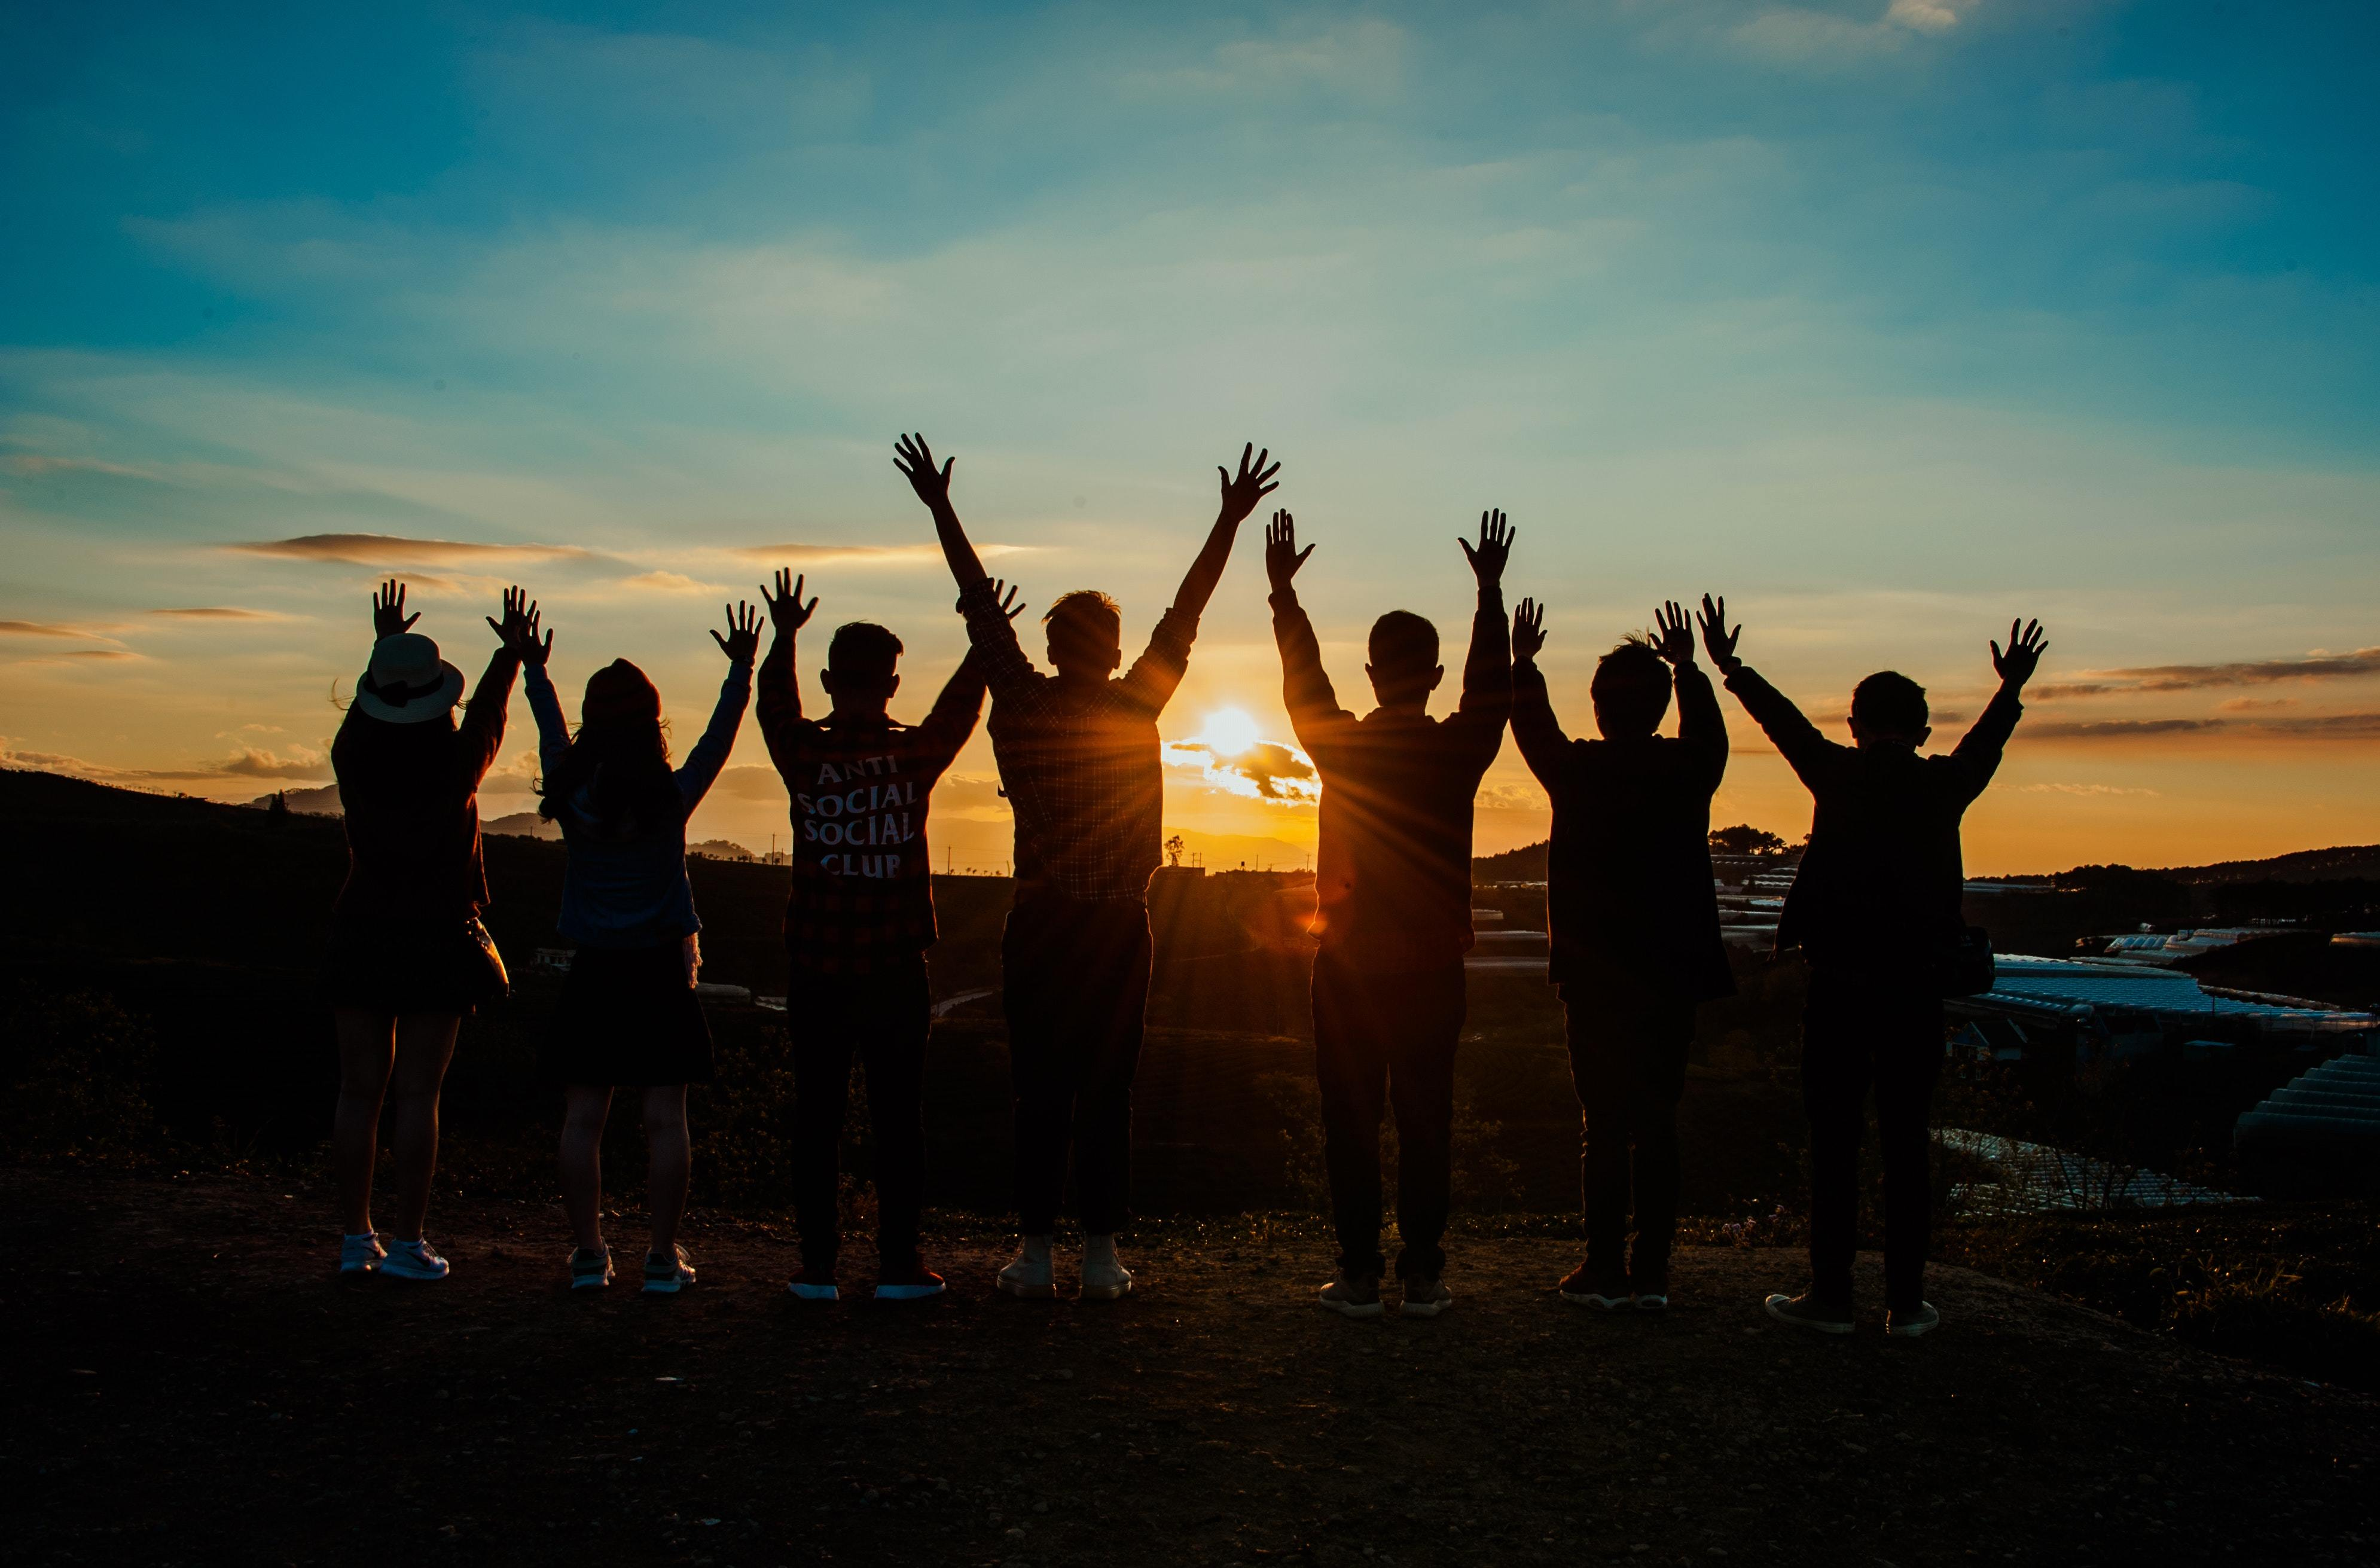 Group Of People With Arms Raised Facing Horizon